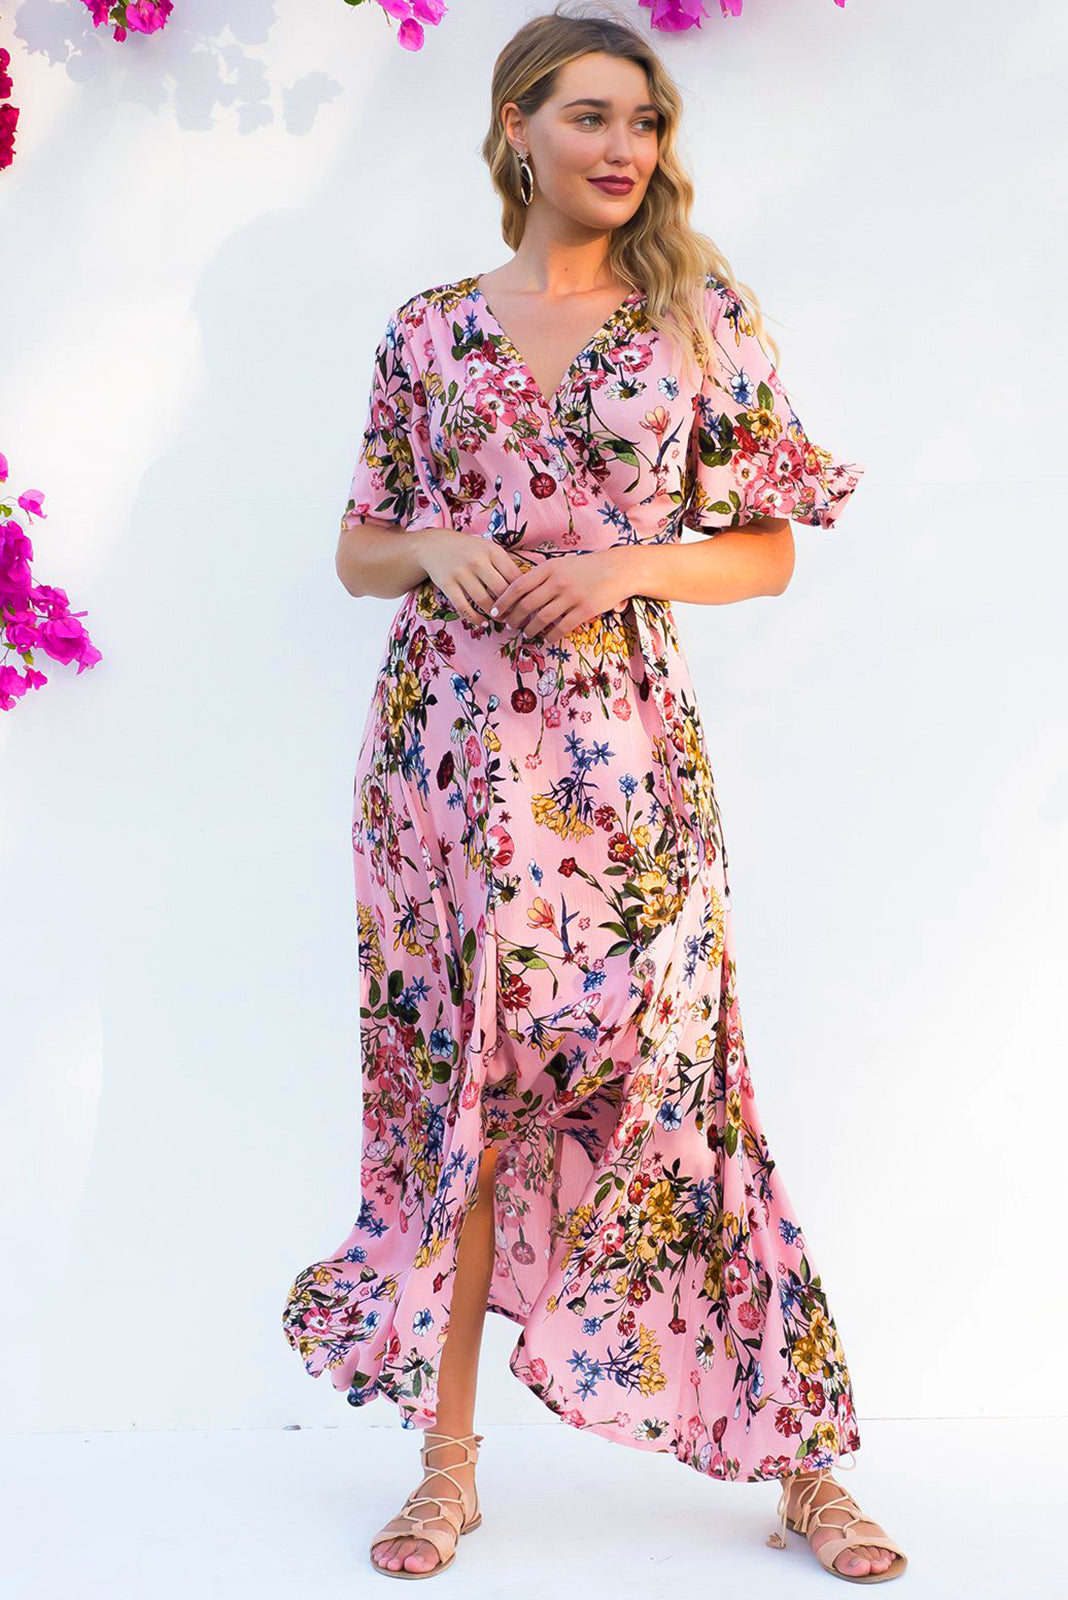 Cinnamon Pemberley Petal Wrap Maxi Dress - Restocked